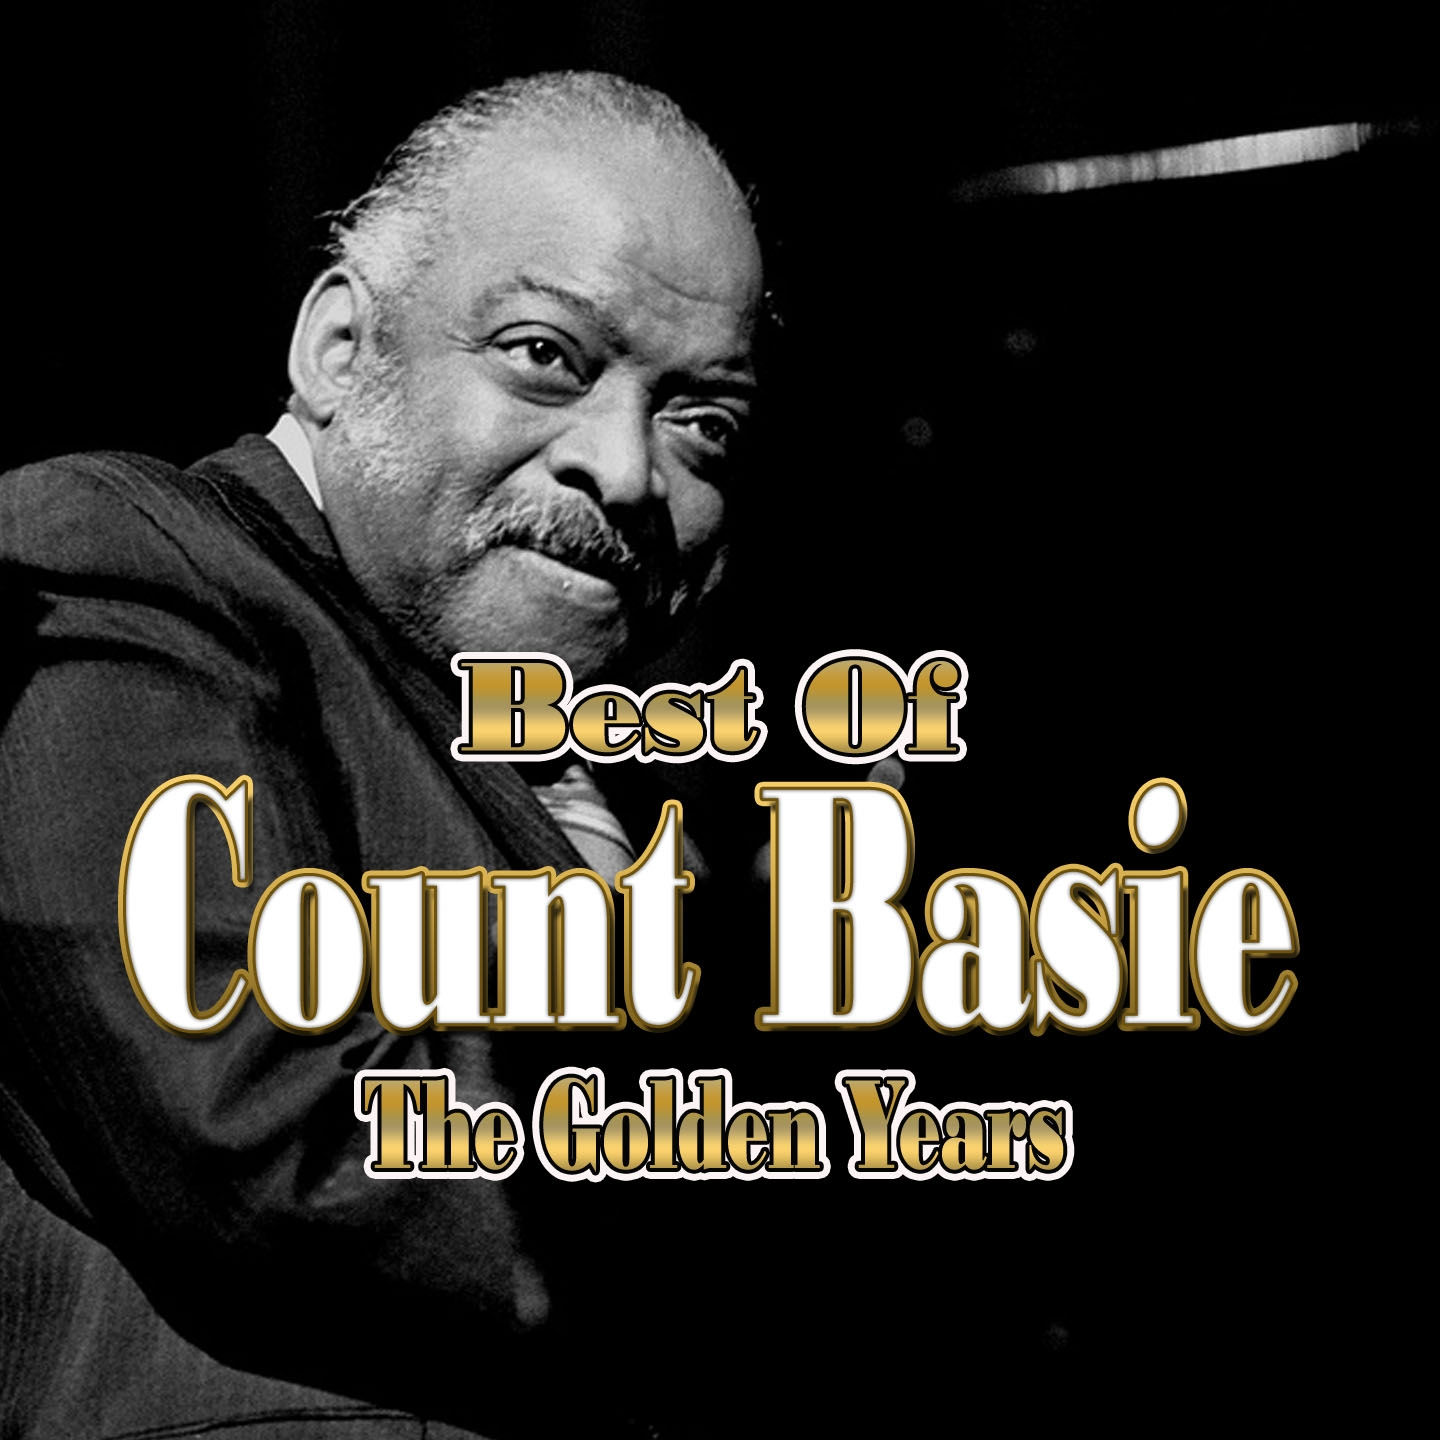 The Best of Count Basie - One O'Clock Jump, Time Out, Topsy, And 23 Other Hits